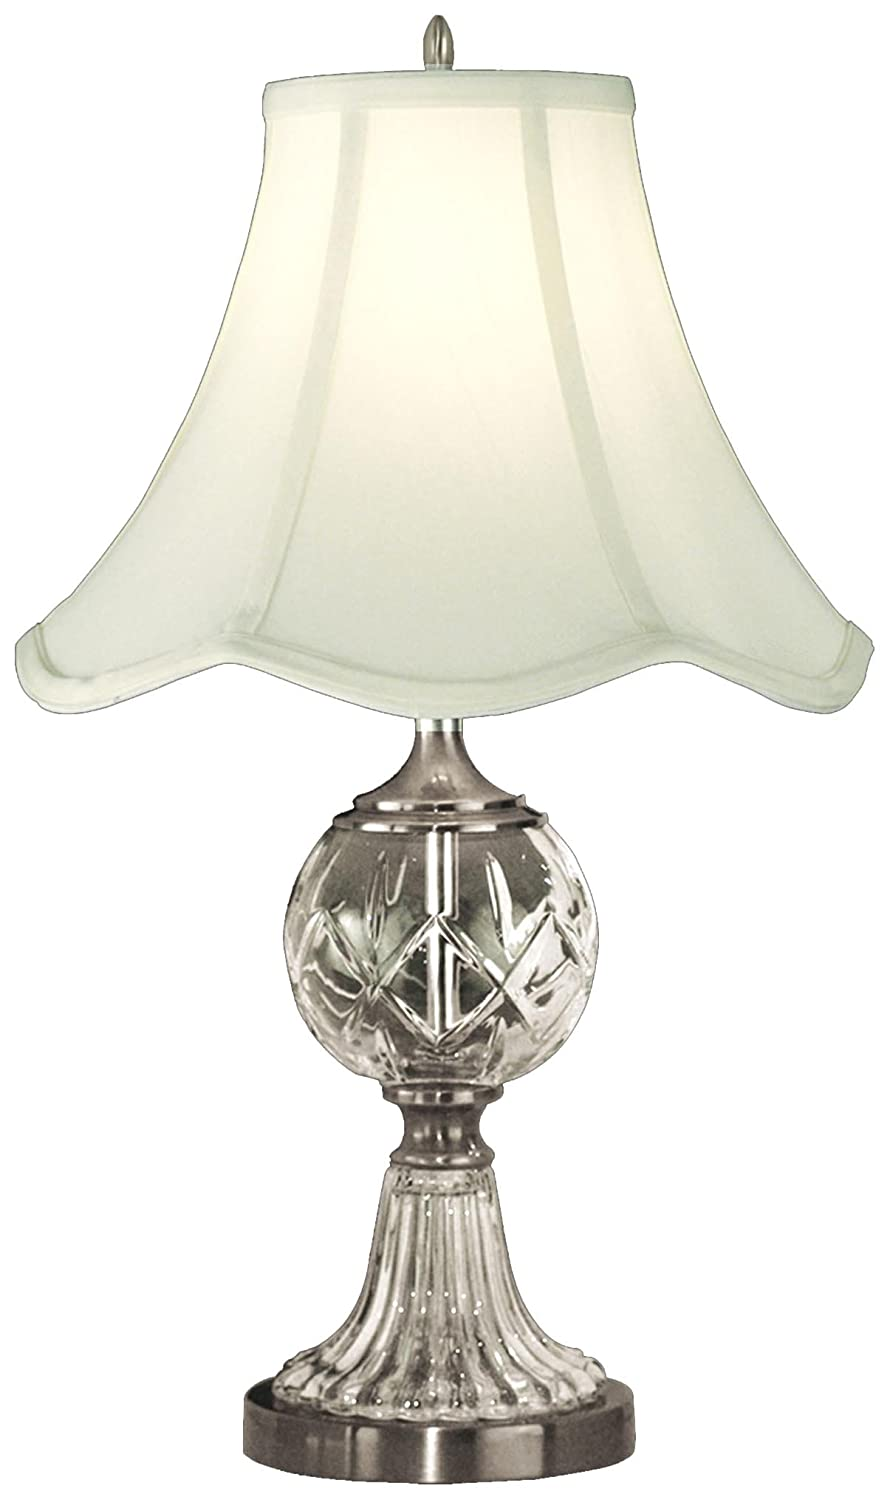 Dale Tiffany GT10356 Crystal Table Lamp, Pewter And Fabric Shade   Glass  Crystal Table Lamps   Amazon.com